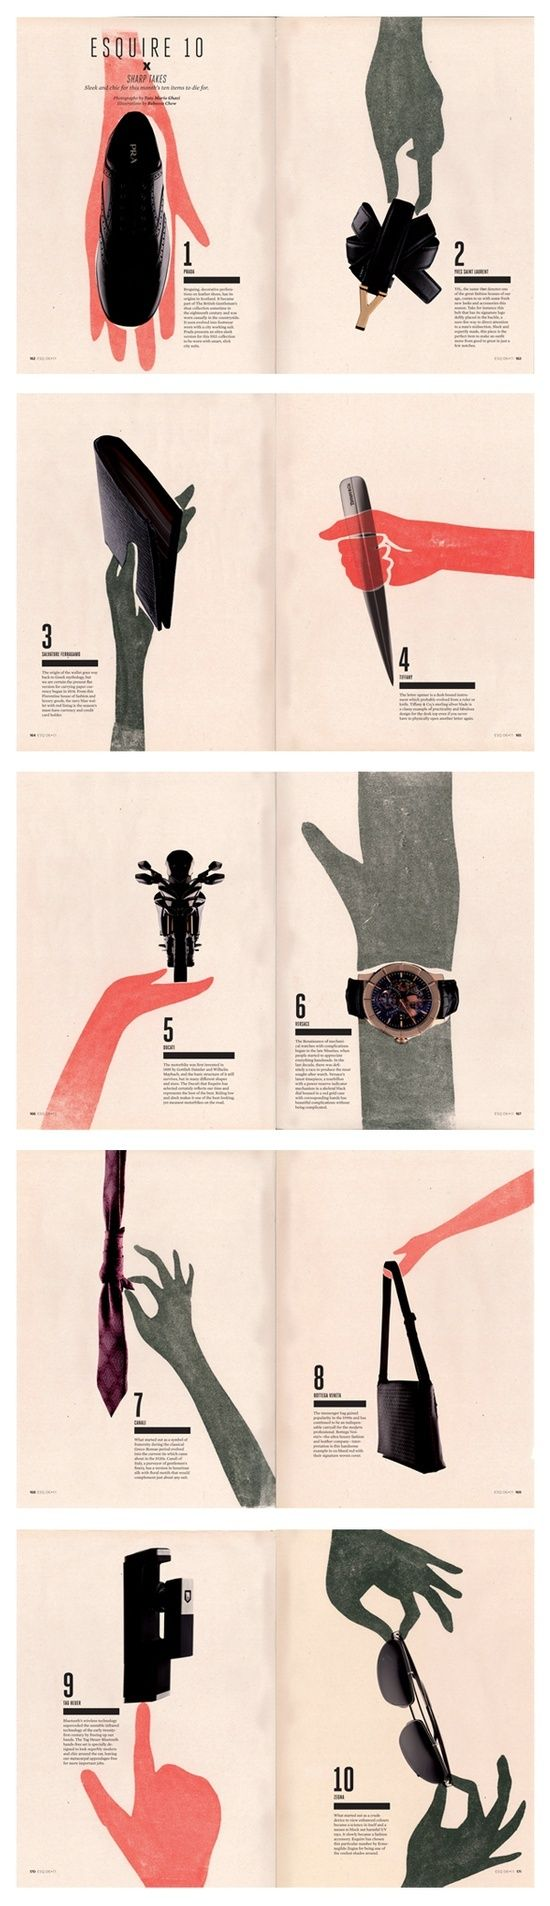 These spreads are a credit to Esquire Malaysia and their art director Rebecca Chew! I'm really impressed with this clever combination of considered typography, screen printing and collage. It sounds like quite a mishmash - but they work together very eleg